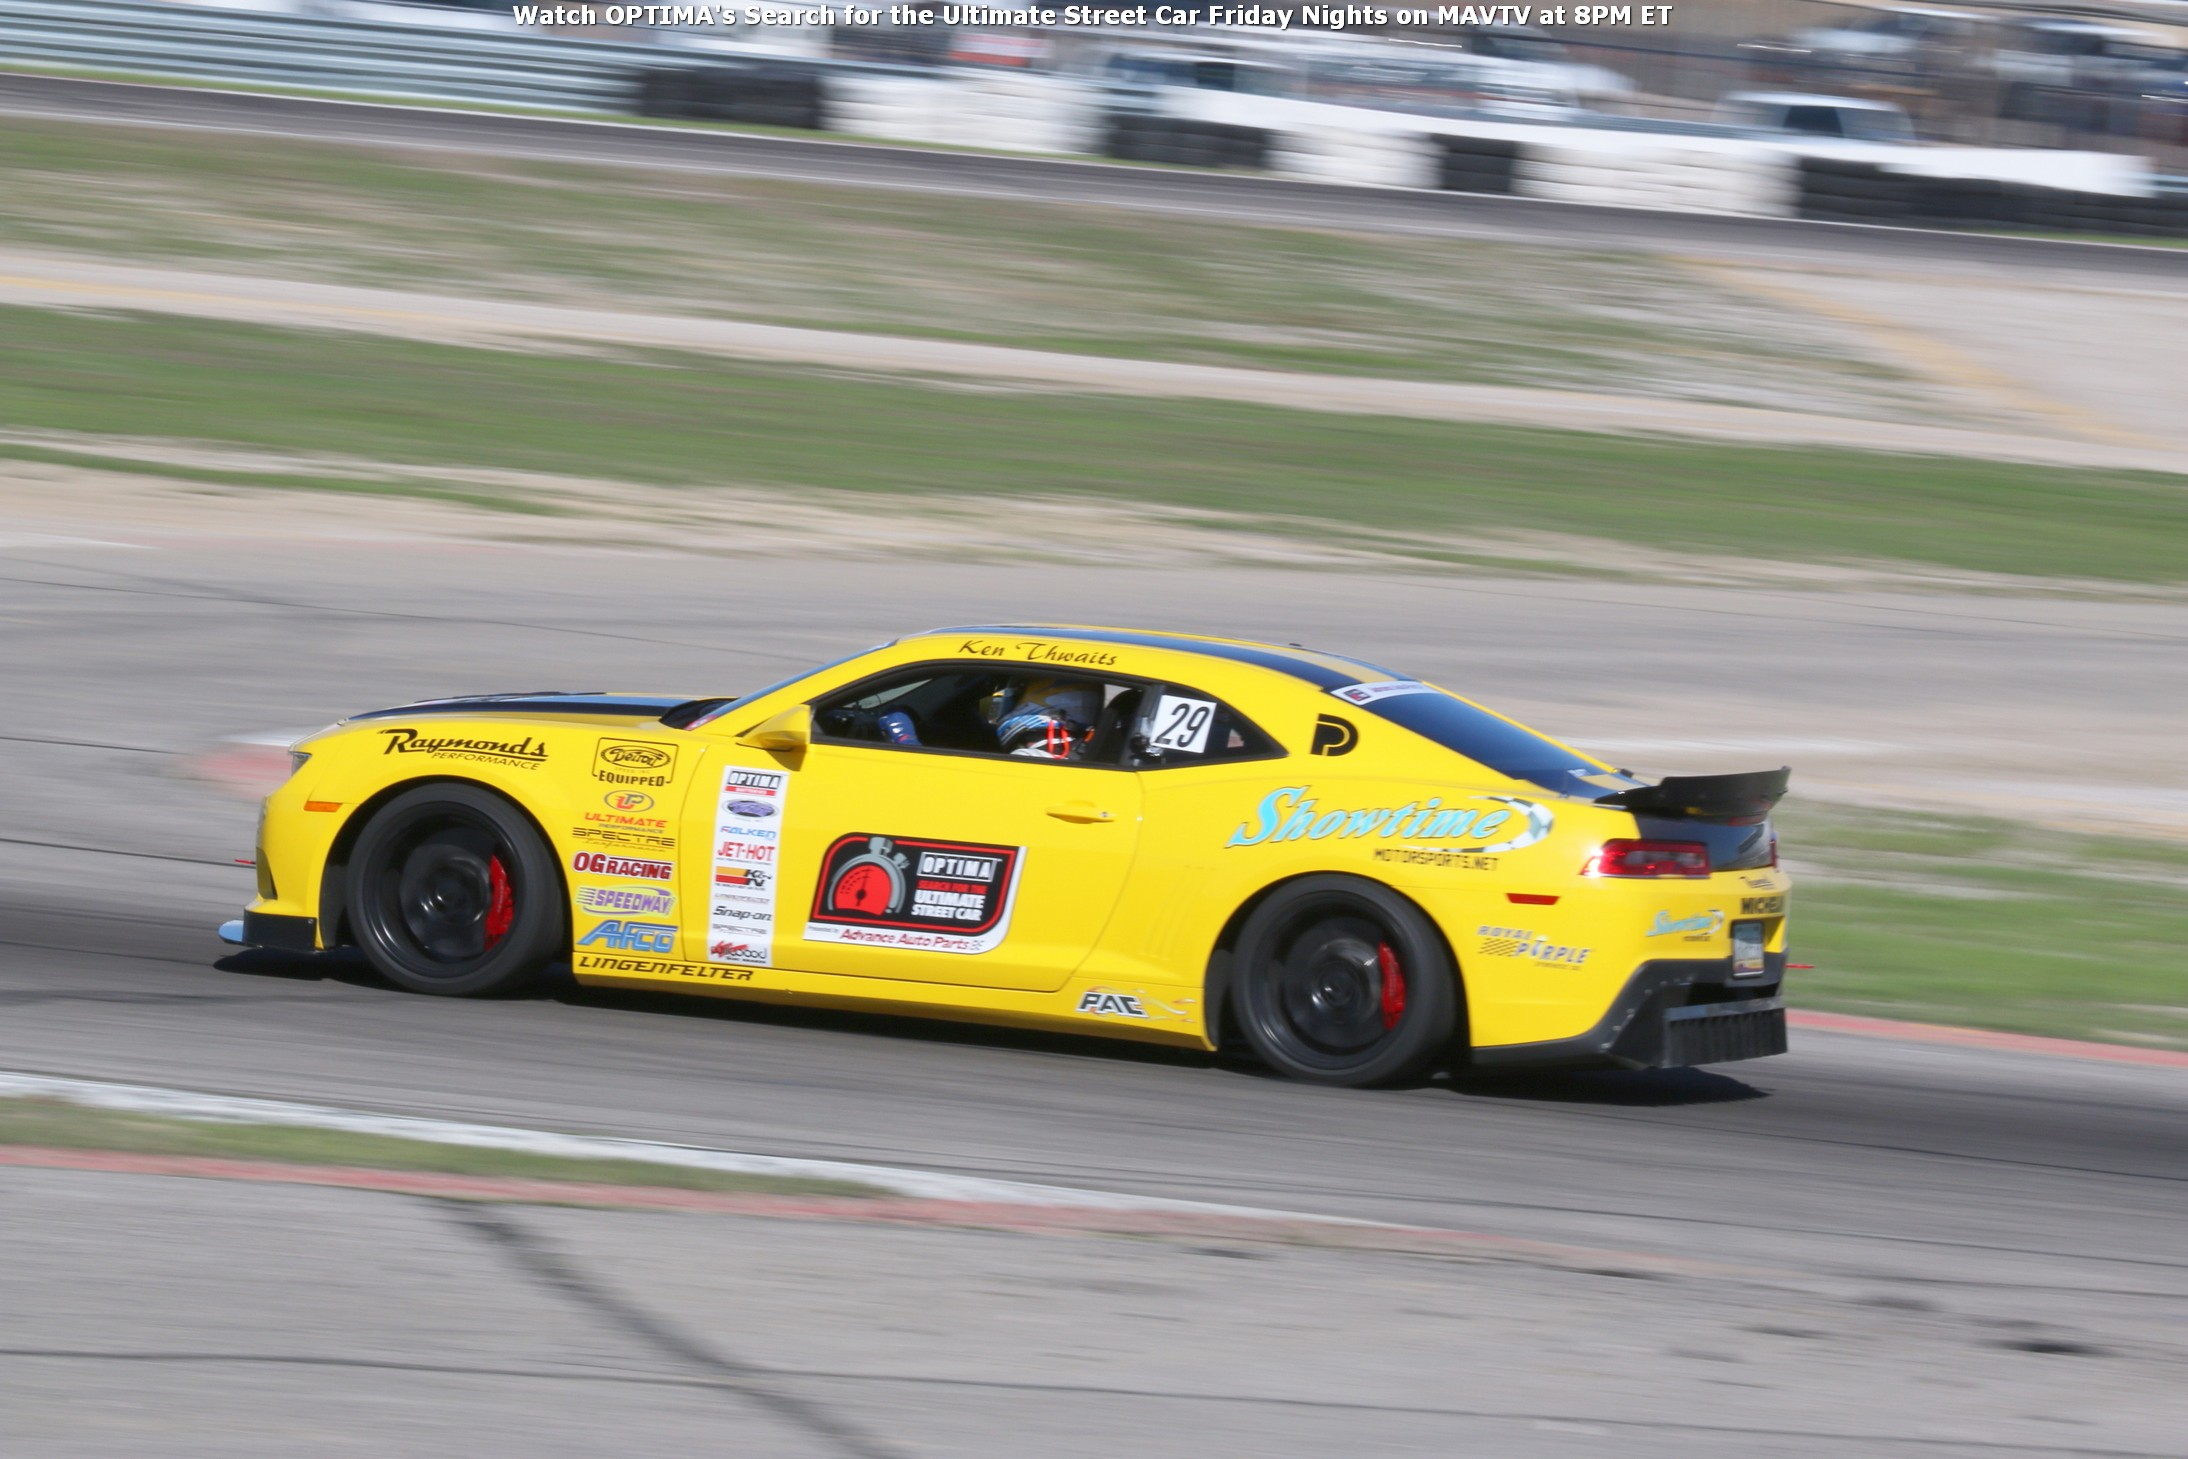 Ken-Thwaits-2014-Chevrolet-Camaro-Drive-OPTIMA-Texas-2015-Falken-Tire-Hot-Lap_177.jpg